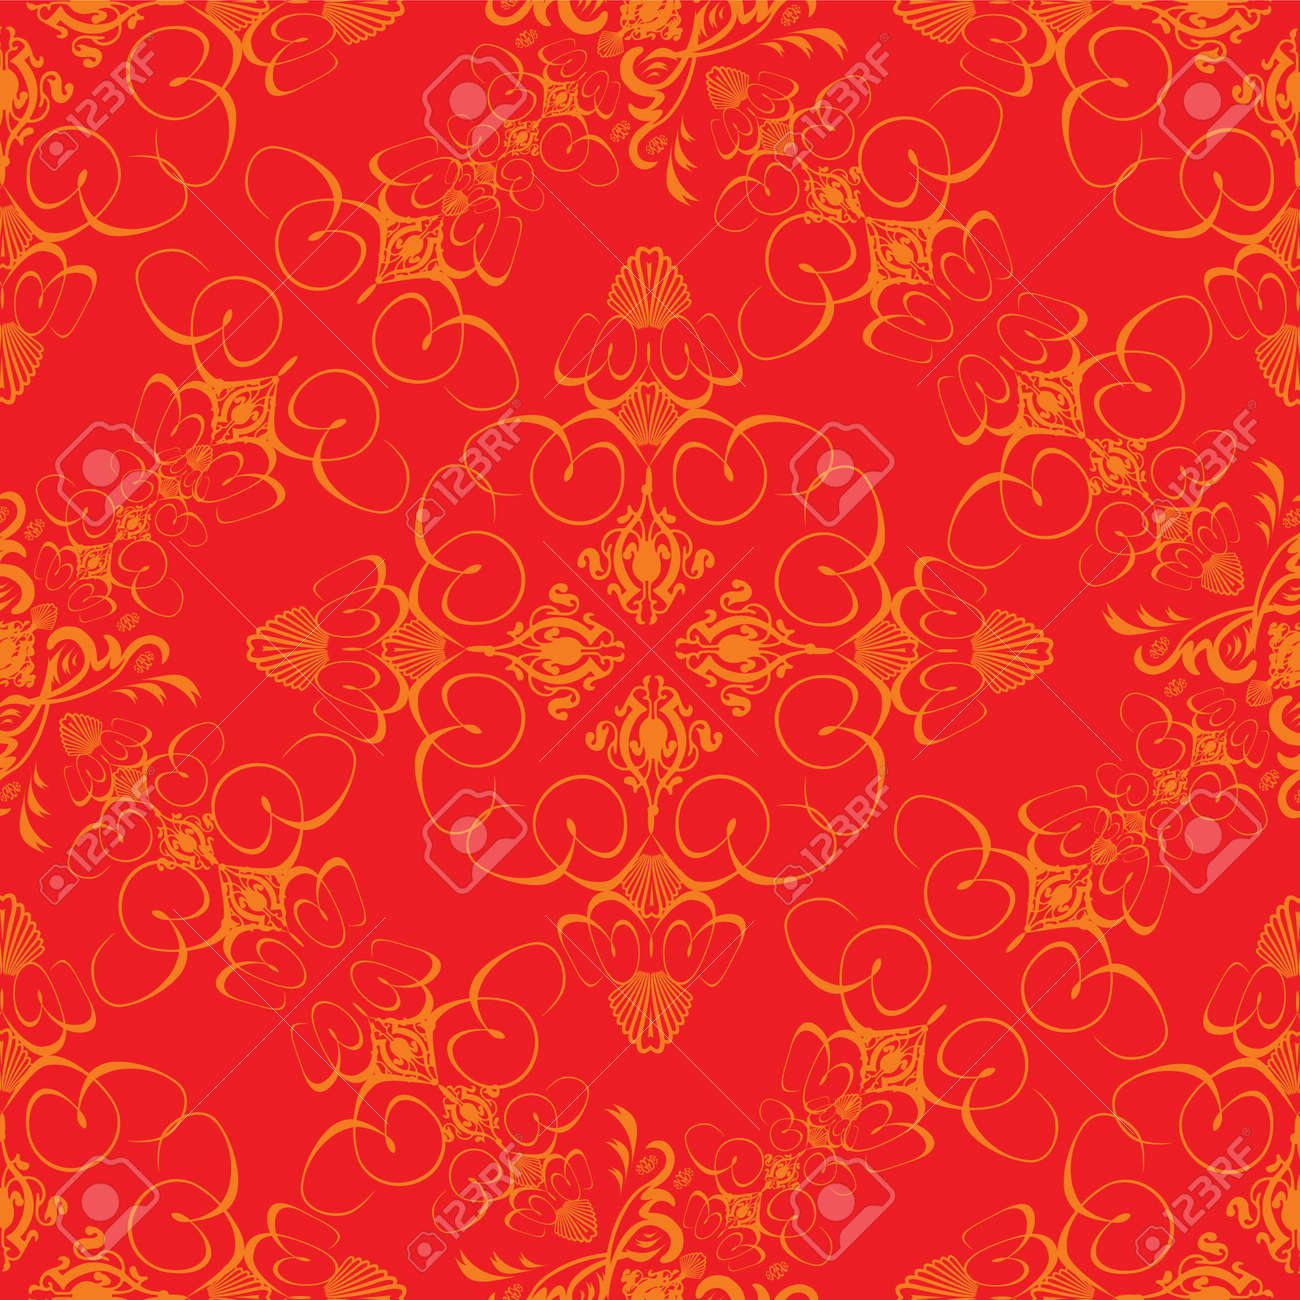 An Abstract Wallpaper Design Done In The Old Fashioned Style Red And Orange Stock Photo